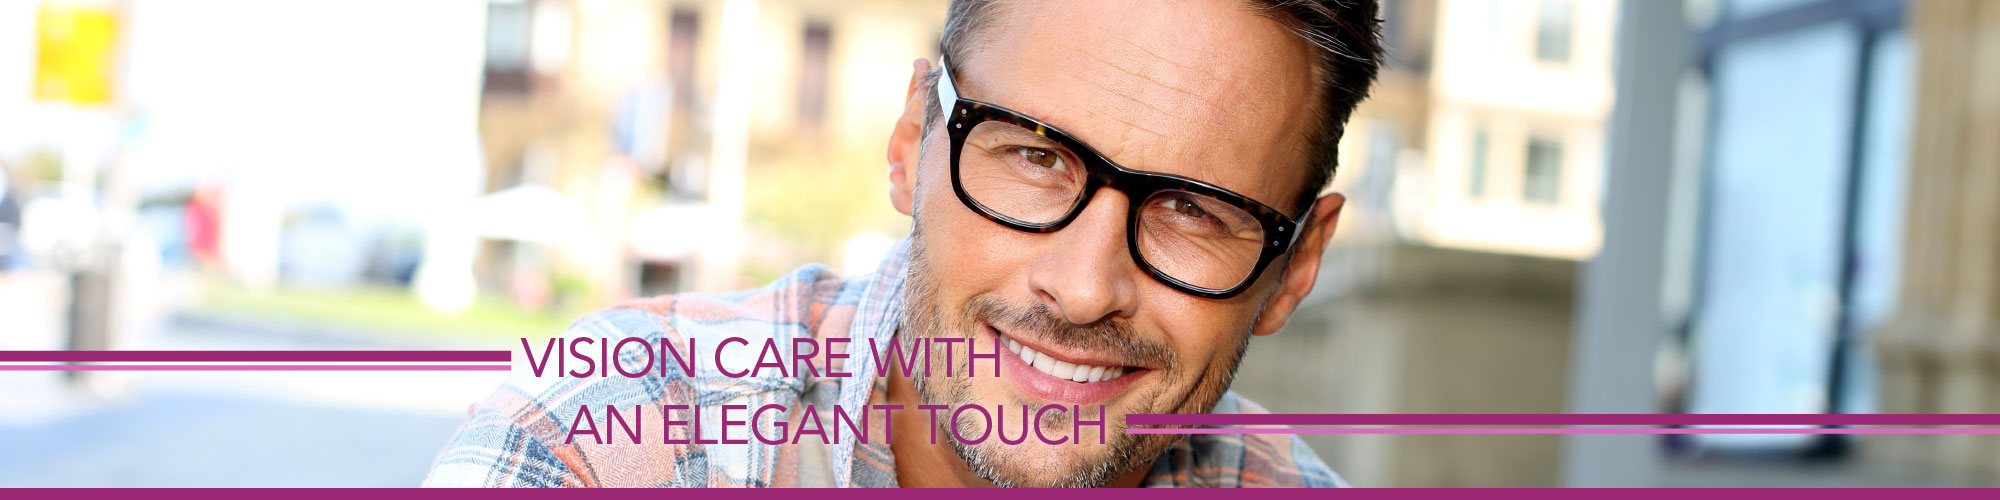 Vision Care with an Elegant Touch | man with glasses